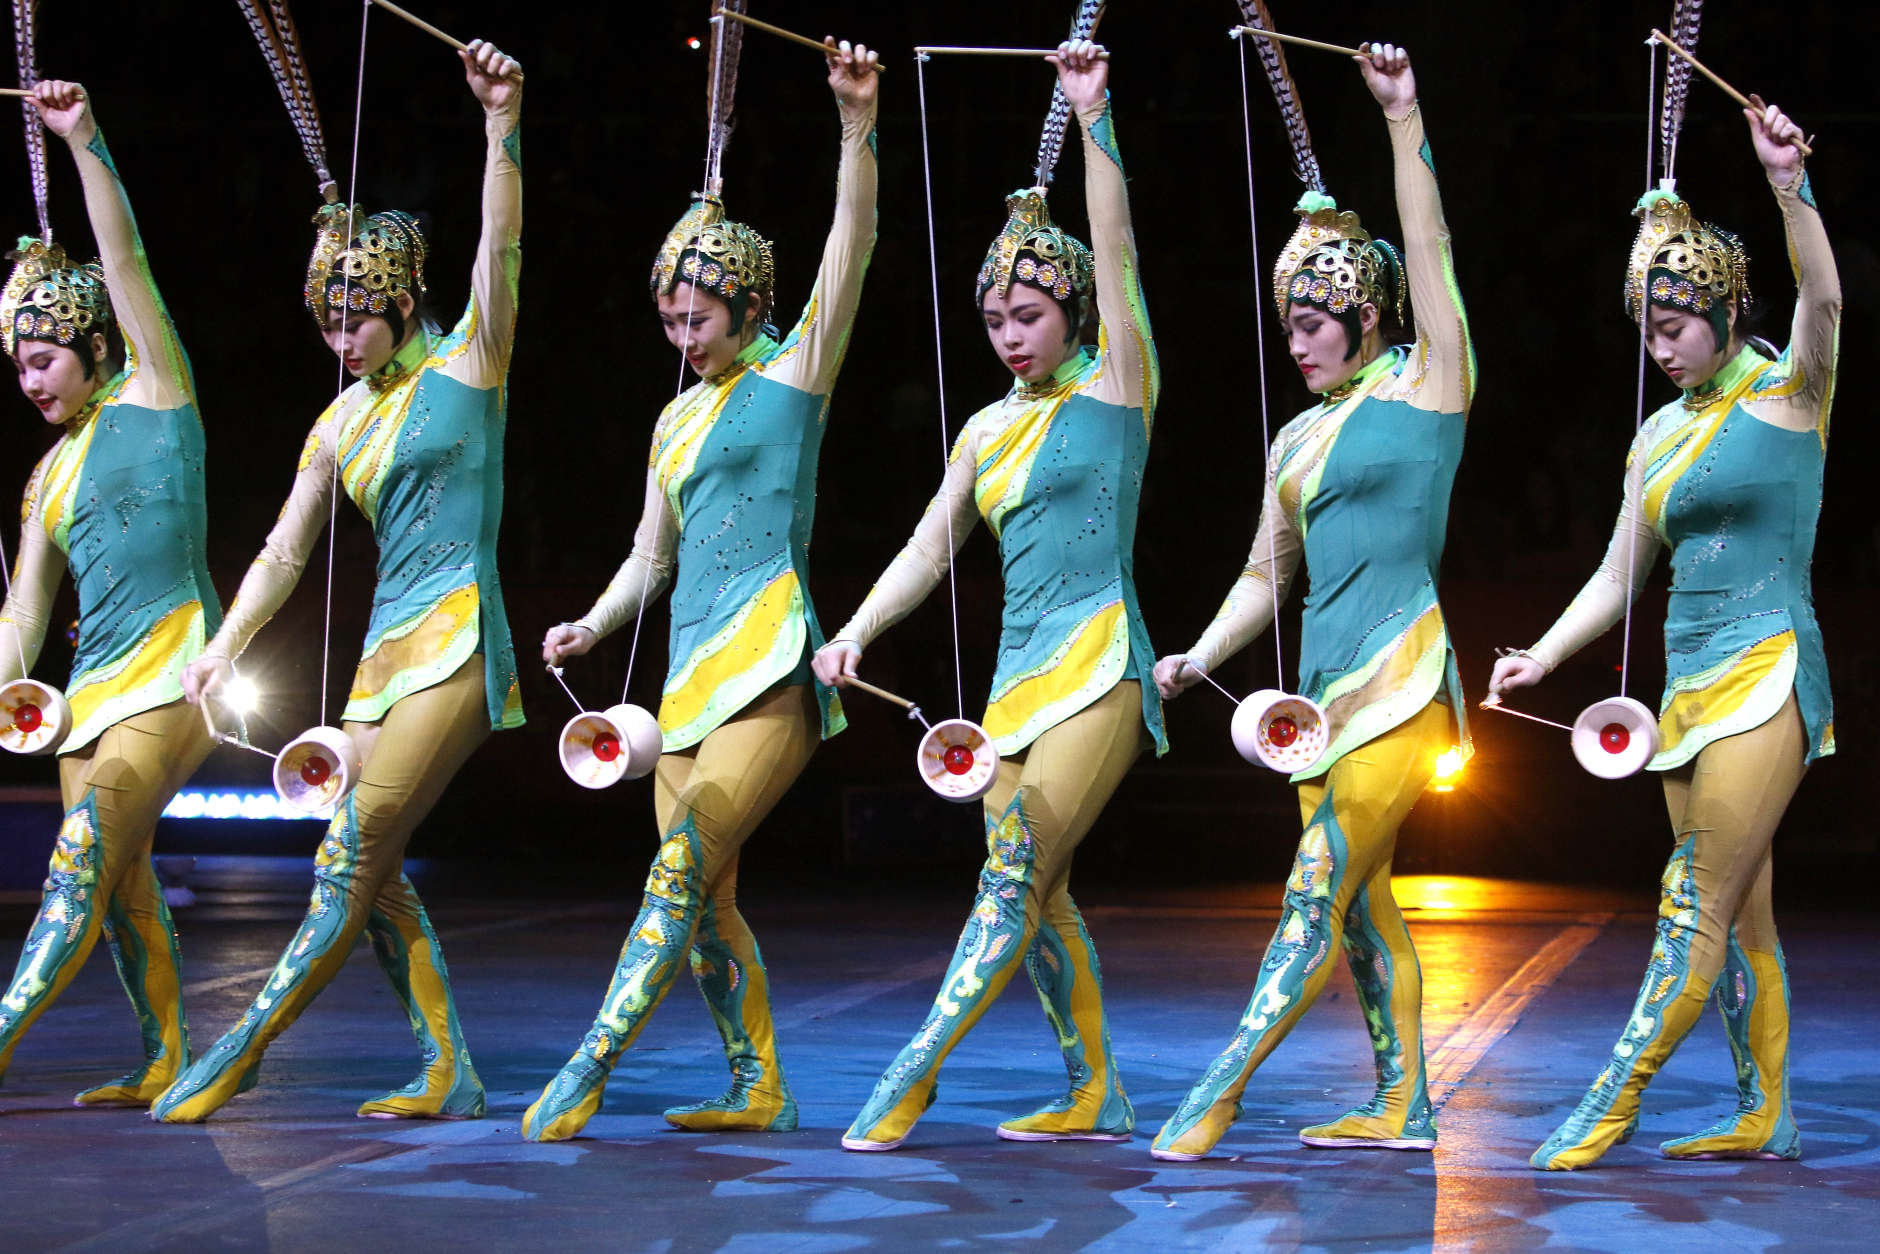 Members of the China National Acrobatic Troupe perform Sunday, May 1, 2016, in Providence, R.I., during the show where Asian elephants made their final performance in the Ringling Bros. and Barnum & Bailey Circus.  (AP Photo/Bill Sikes)